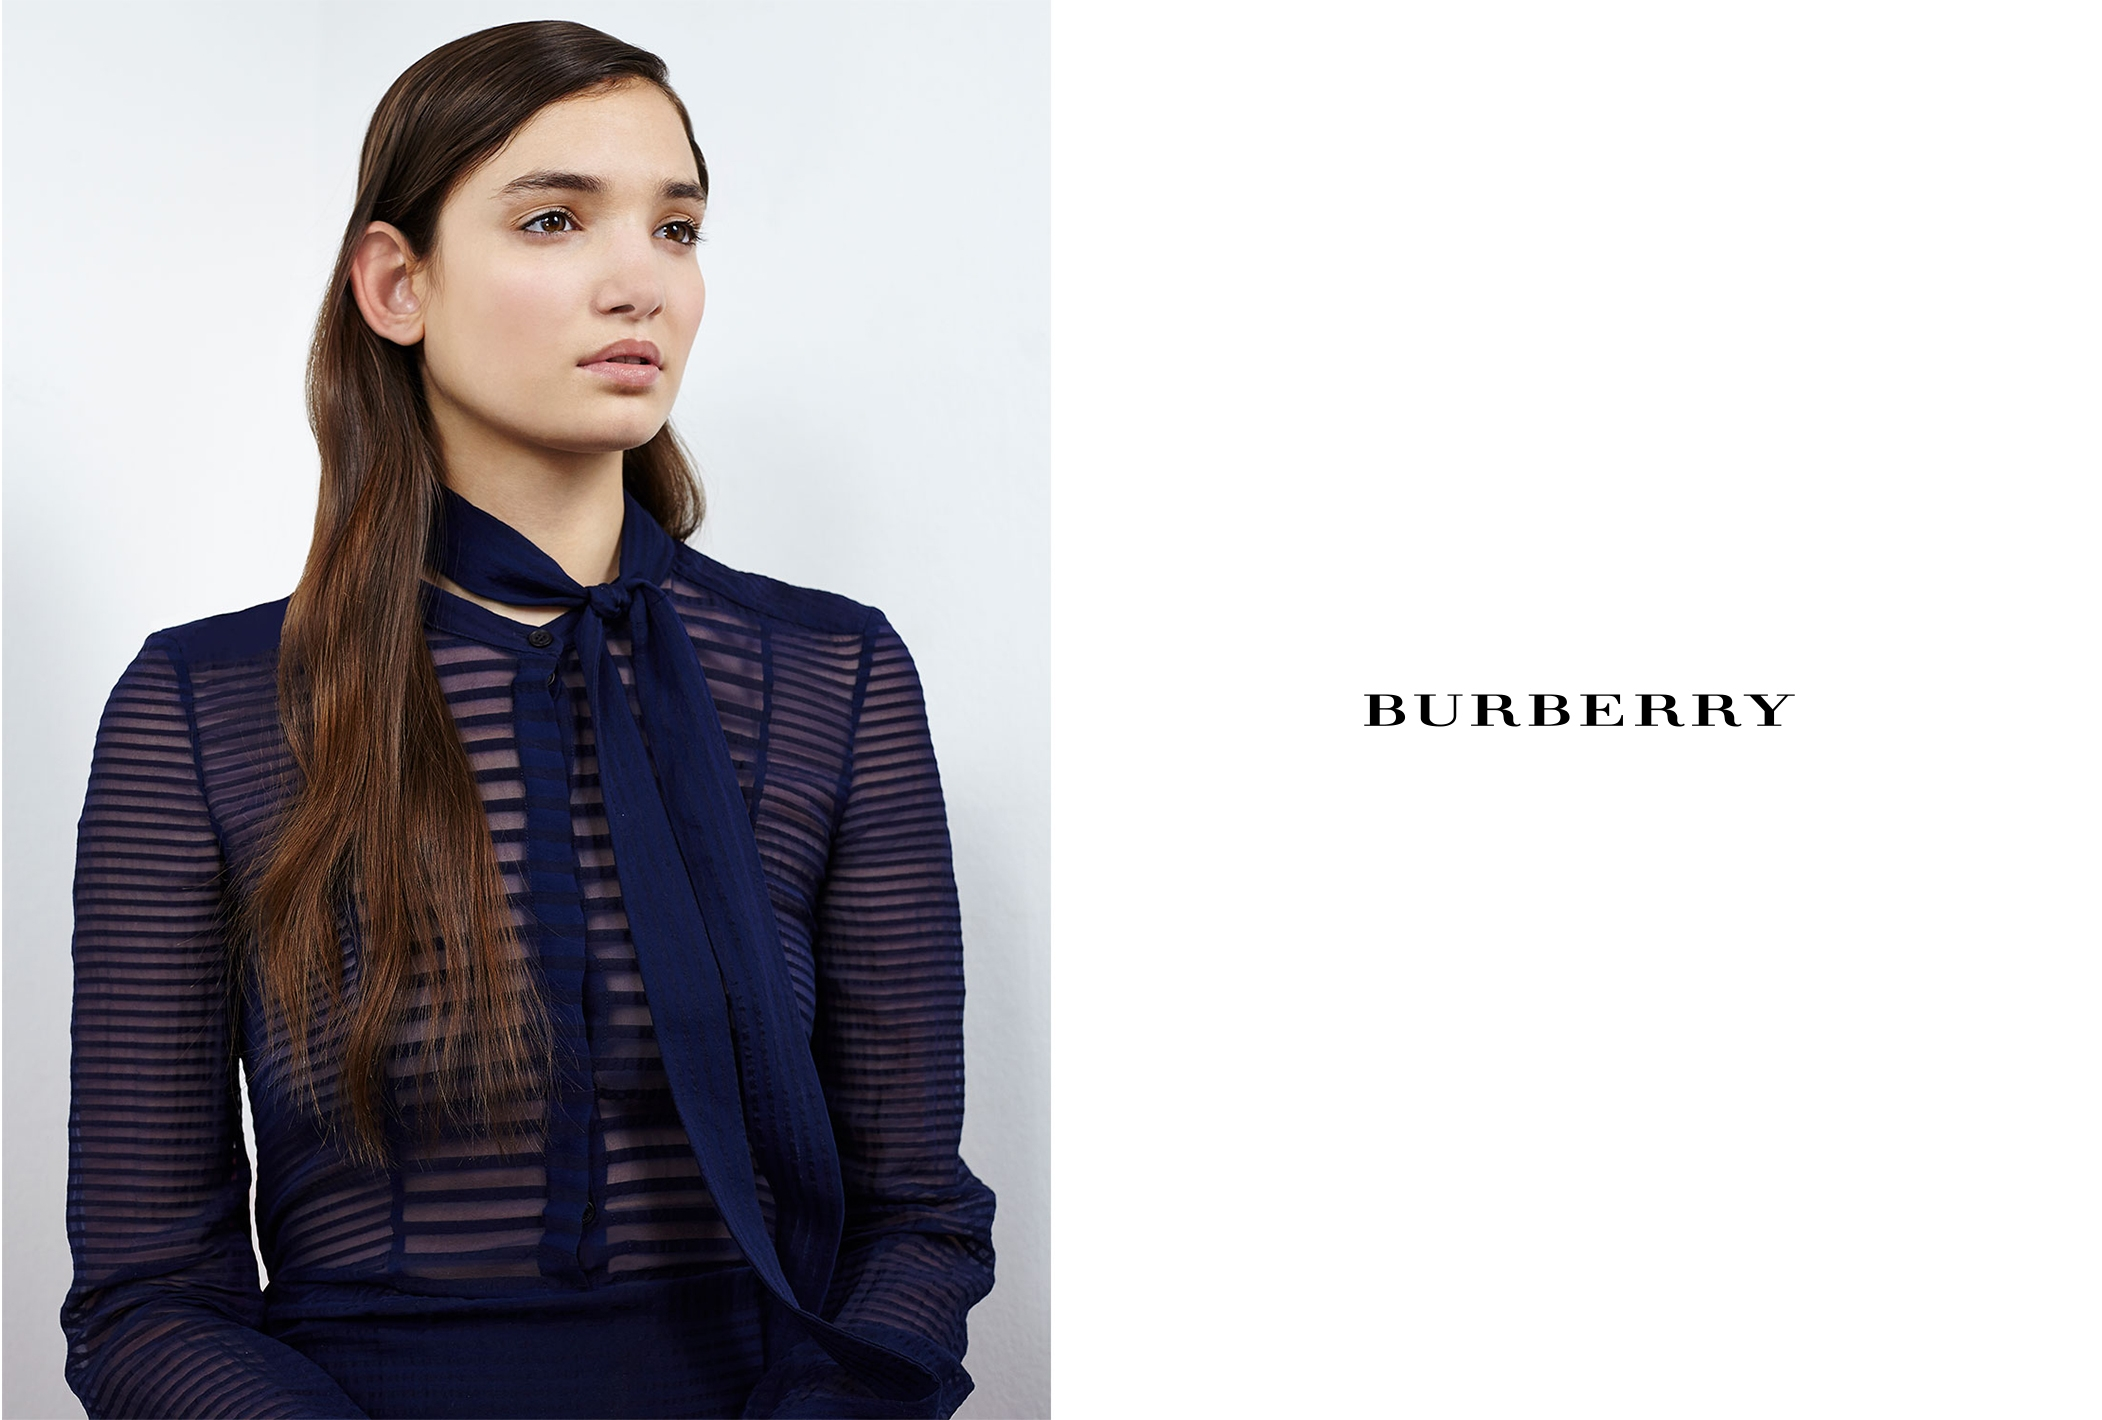 Burberry Wonderland Fashion Photography, Fashion Photographer, Fashion Film, Nick Thompson Photography, Burberry Campaign